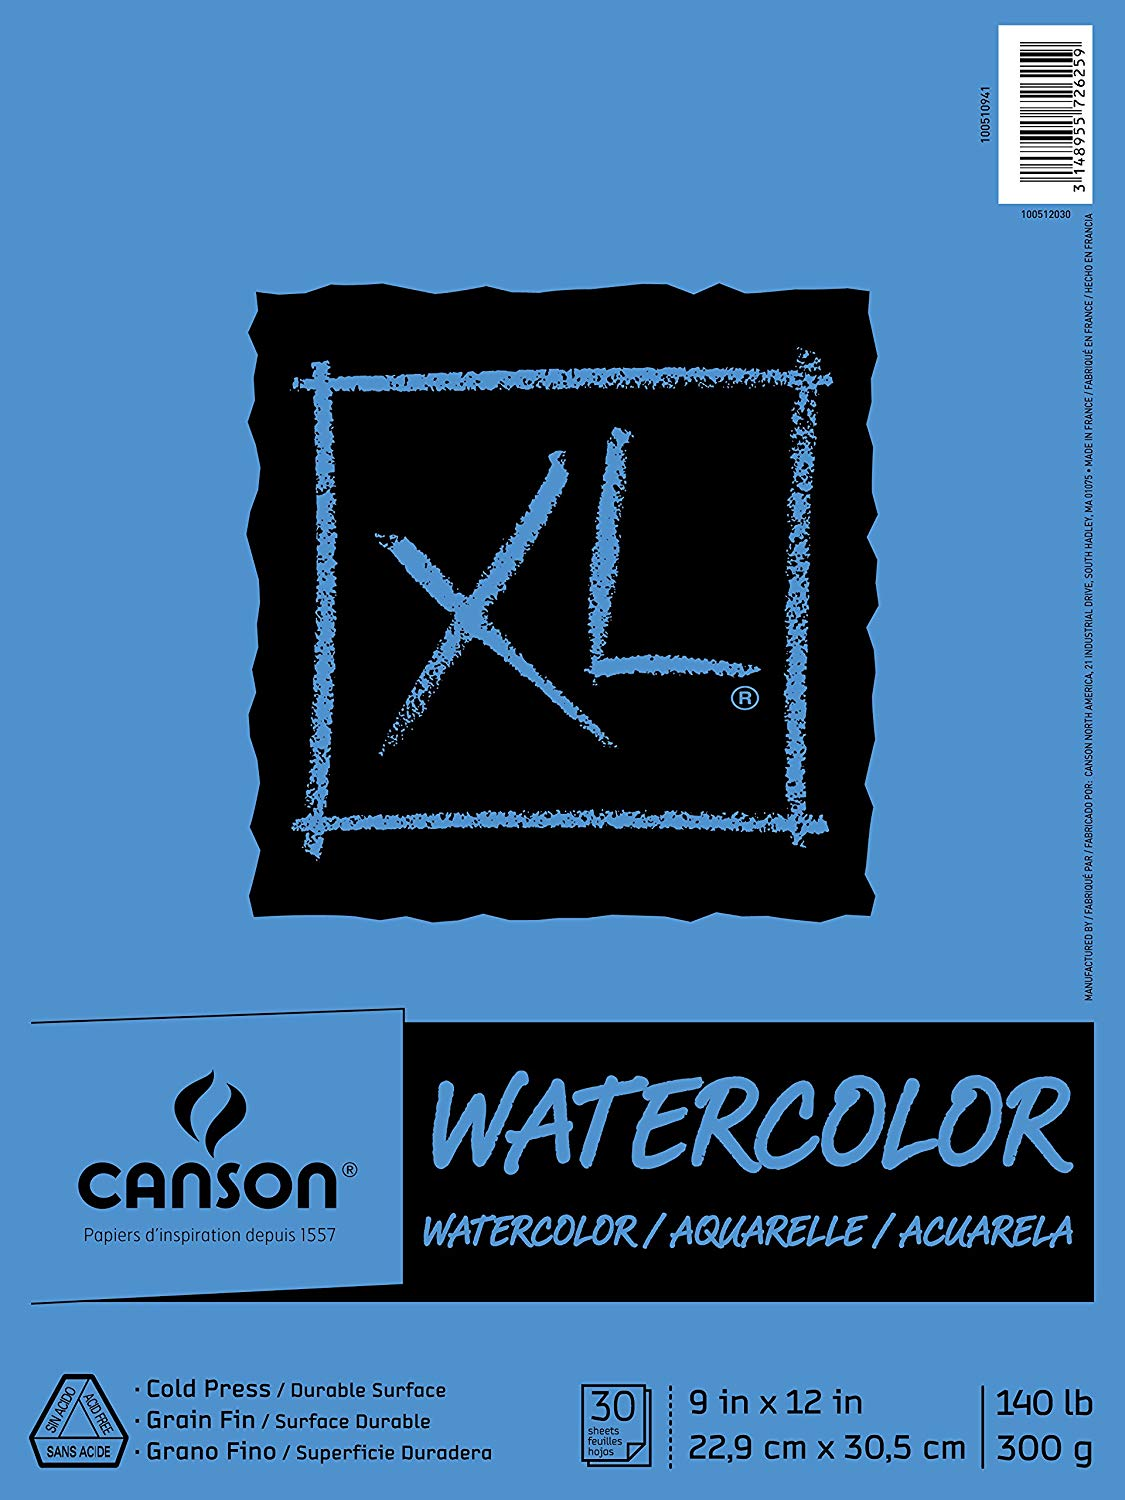 Canson Watercolor Textured Paper